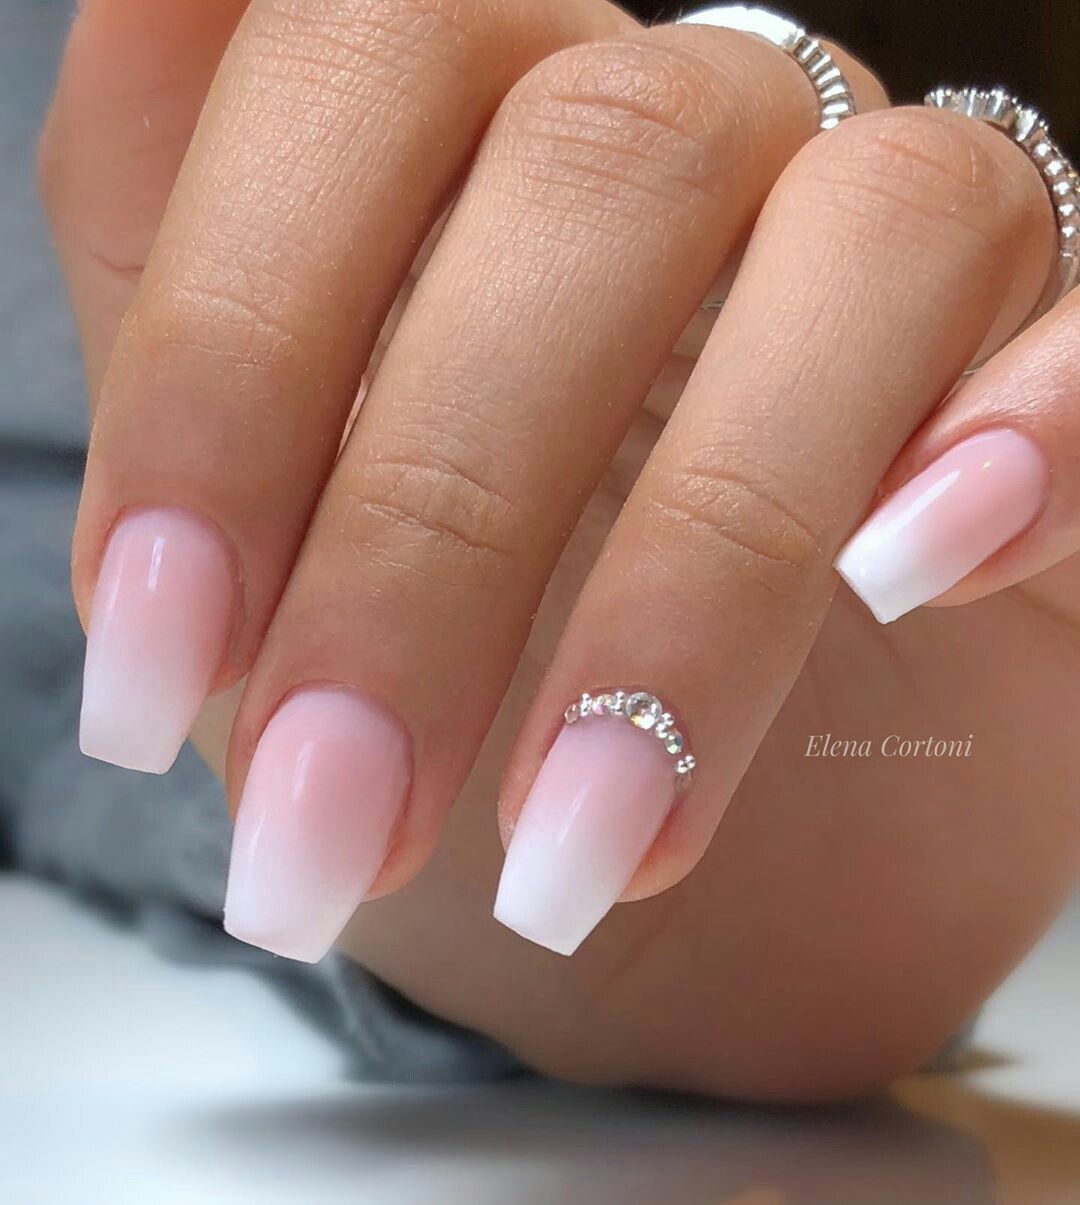 How To Do French Ombre Dip Nails In 2020 Coffin Shape Nails Short Acrylic Nails Designs Short Coffin Nails Designs